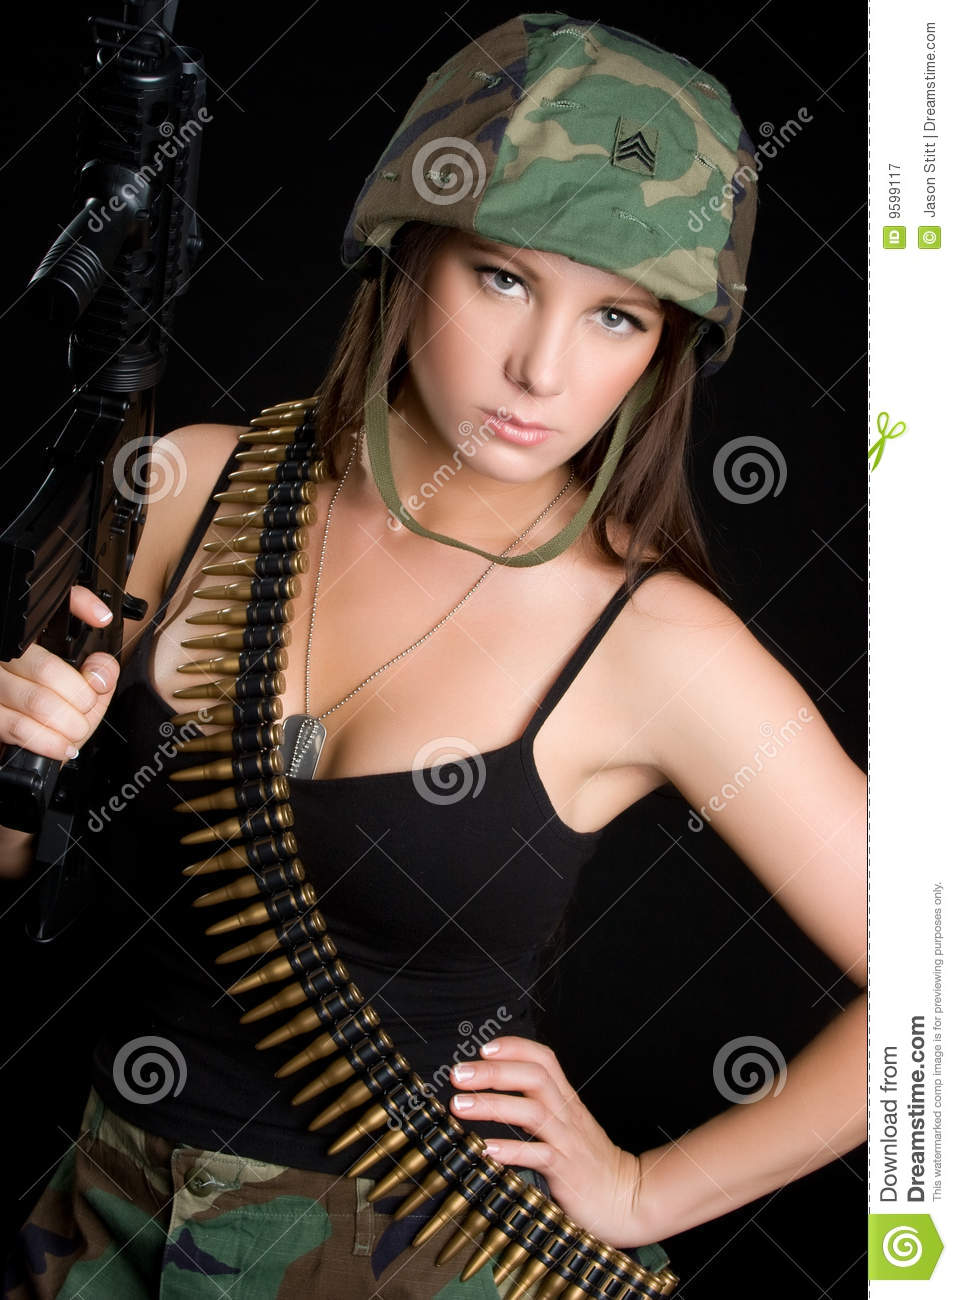 hot women in sexy military